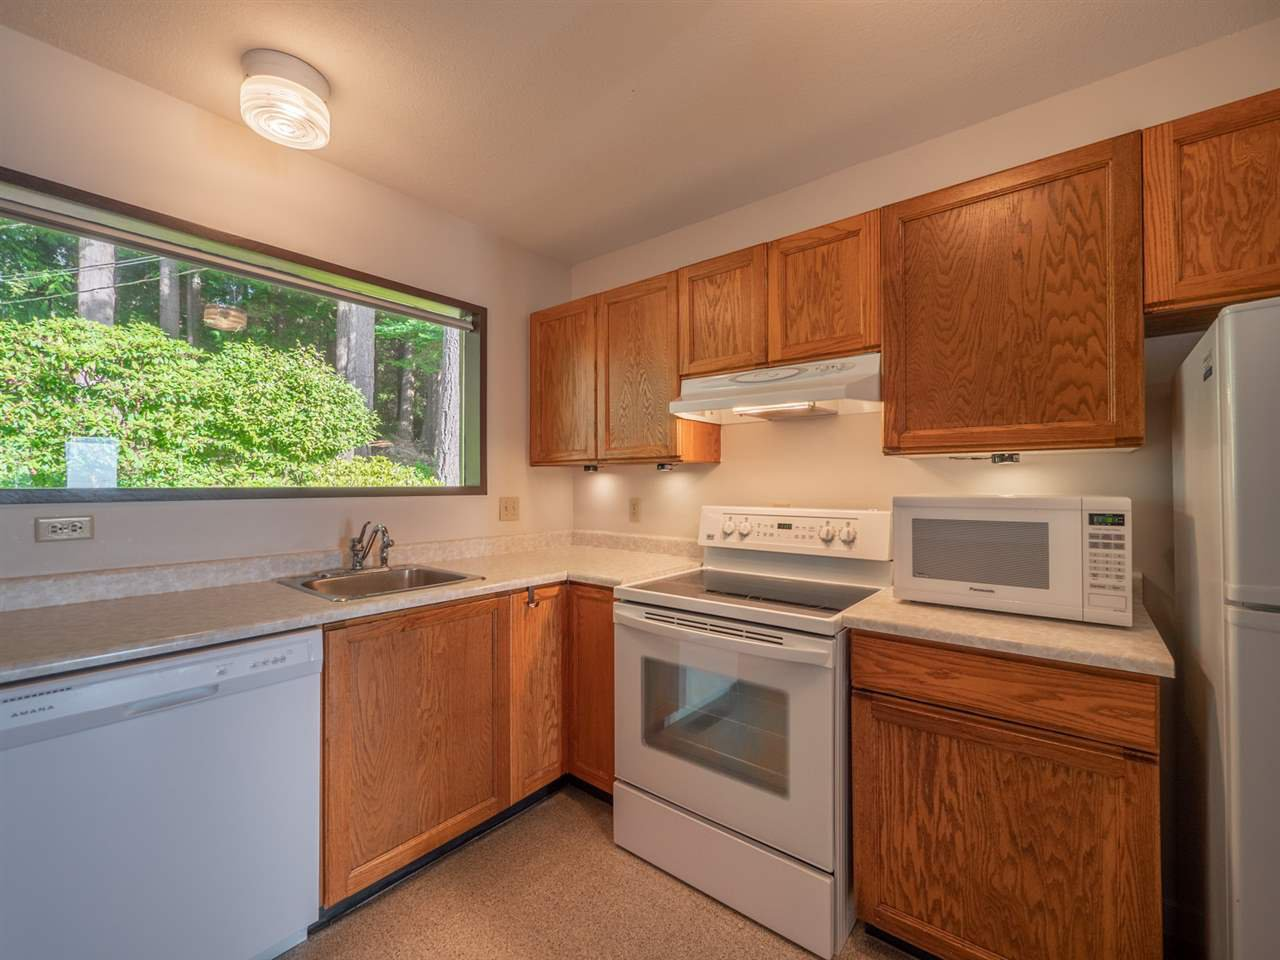 Photo 16: Photos: 877 GOWER POINT Road in Gibsons: Gibsons & Area House for sale (Sunshine Coast)  : MLS®# R2419918